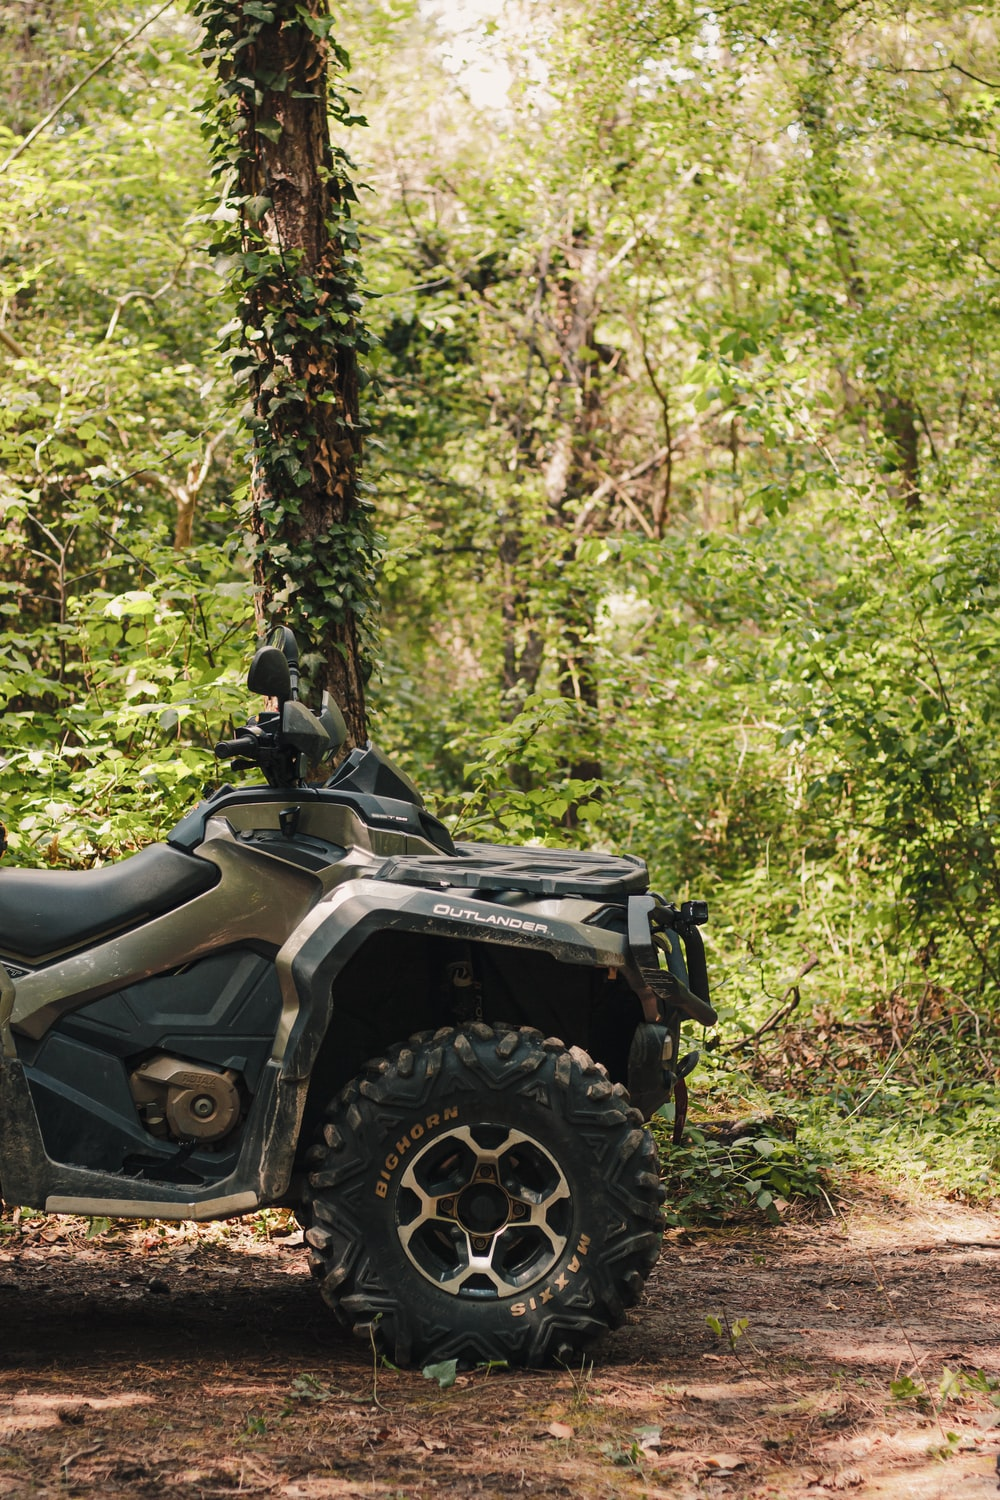 black and gray atv in forest during daytime